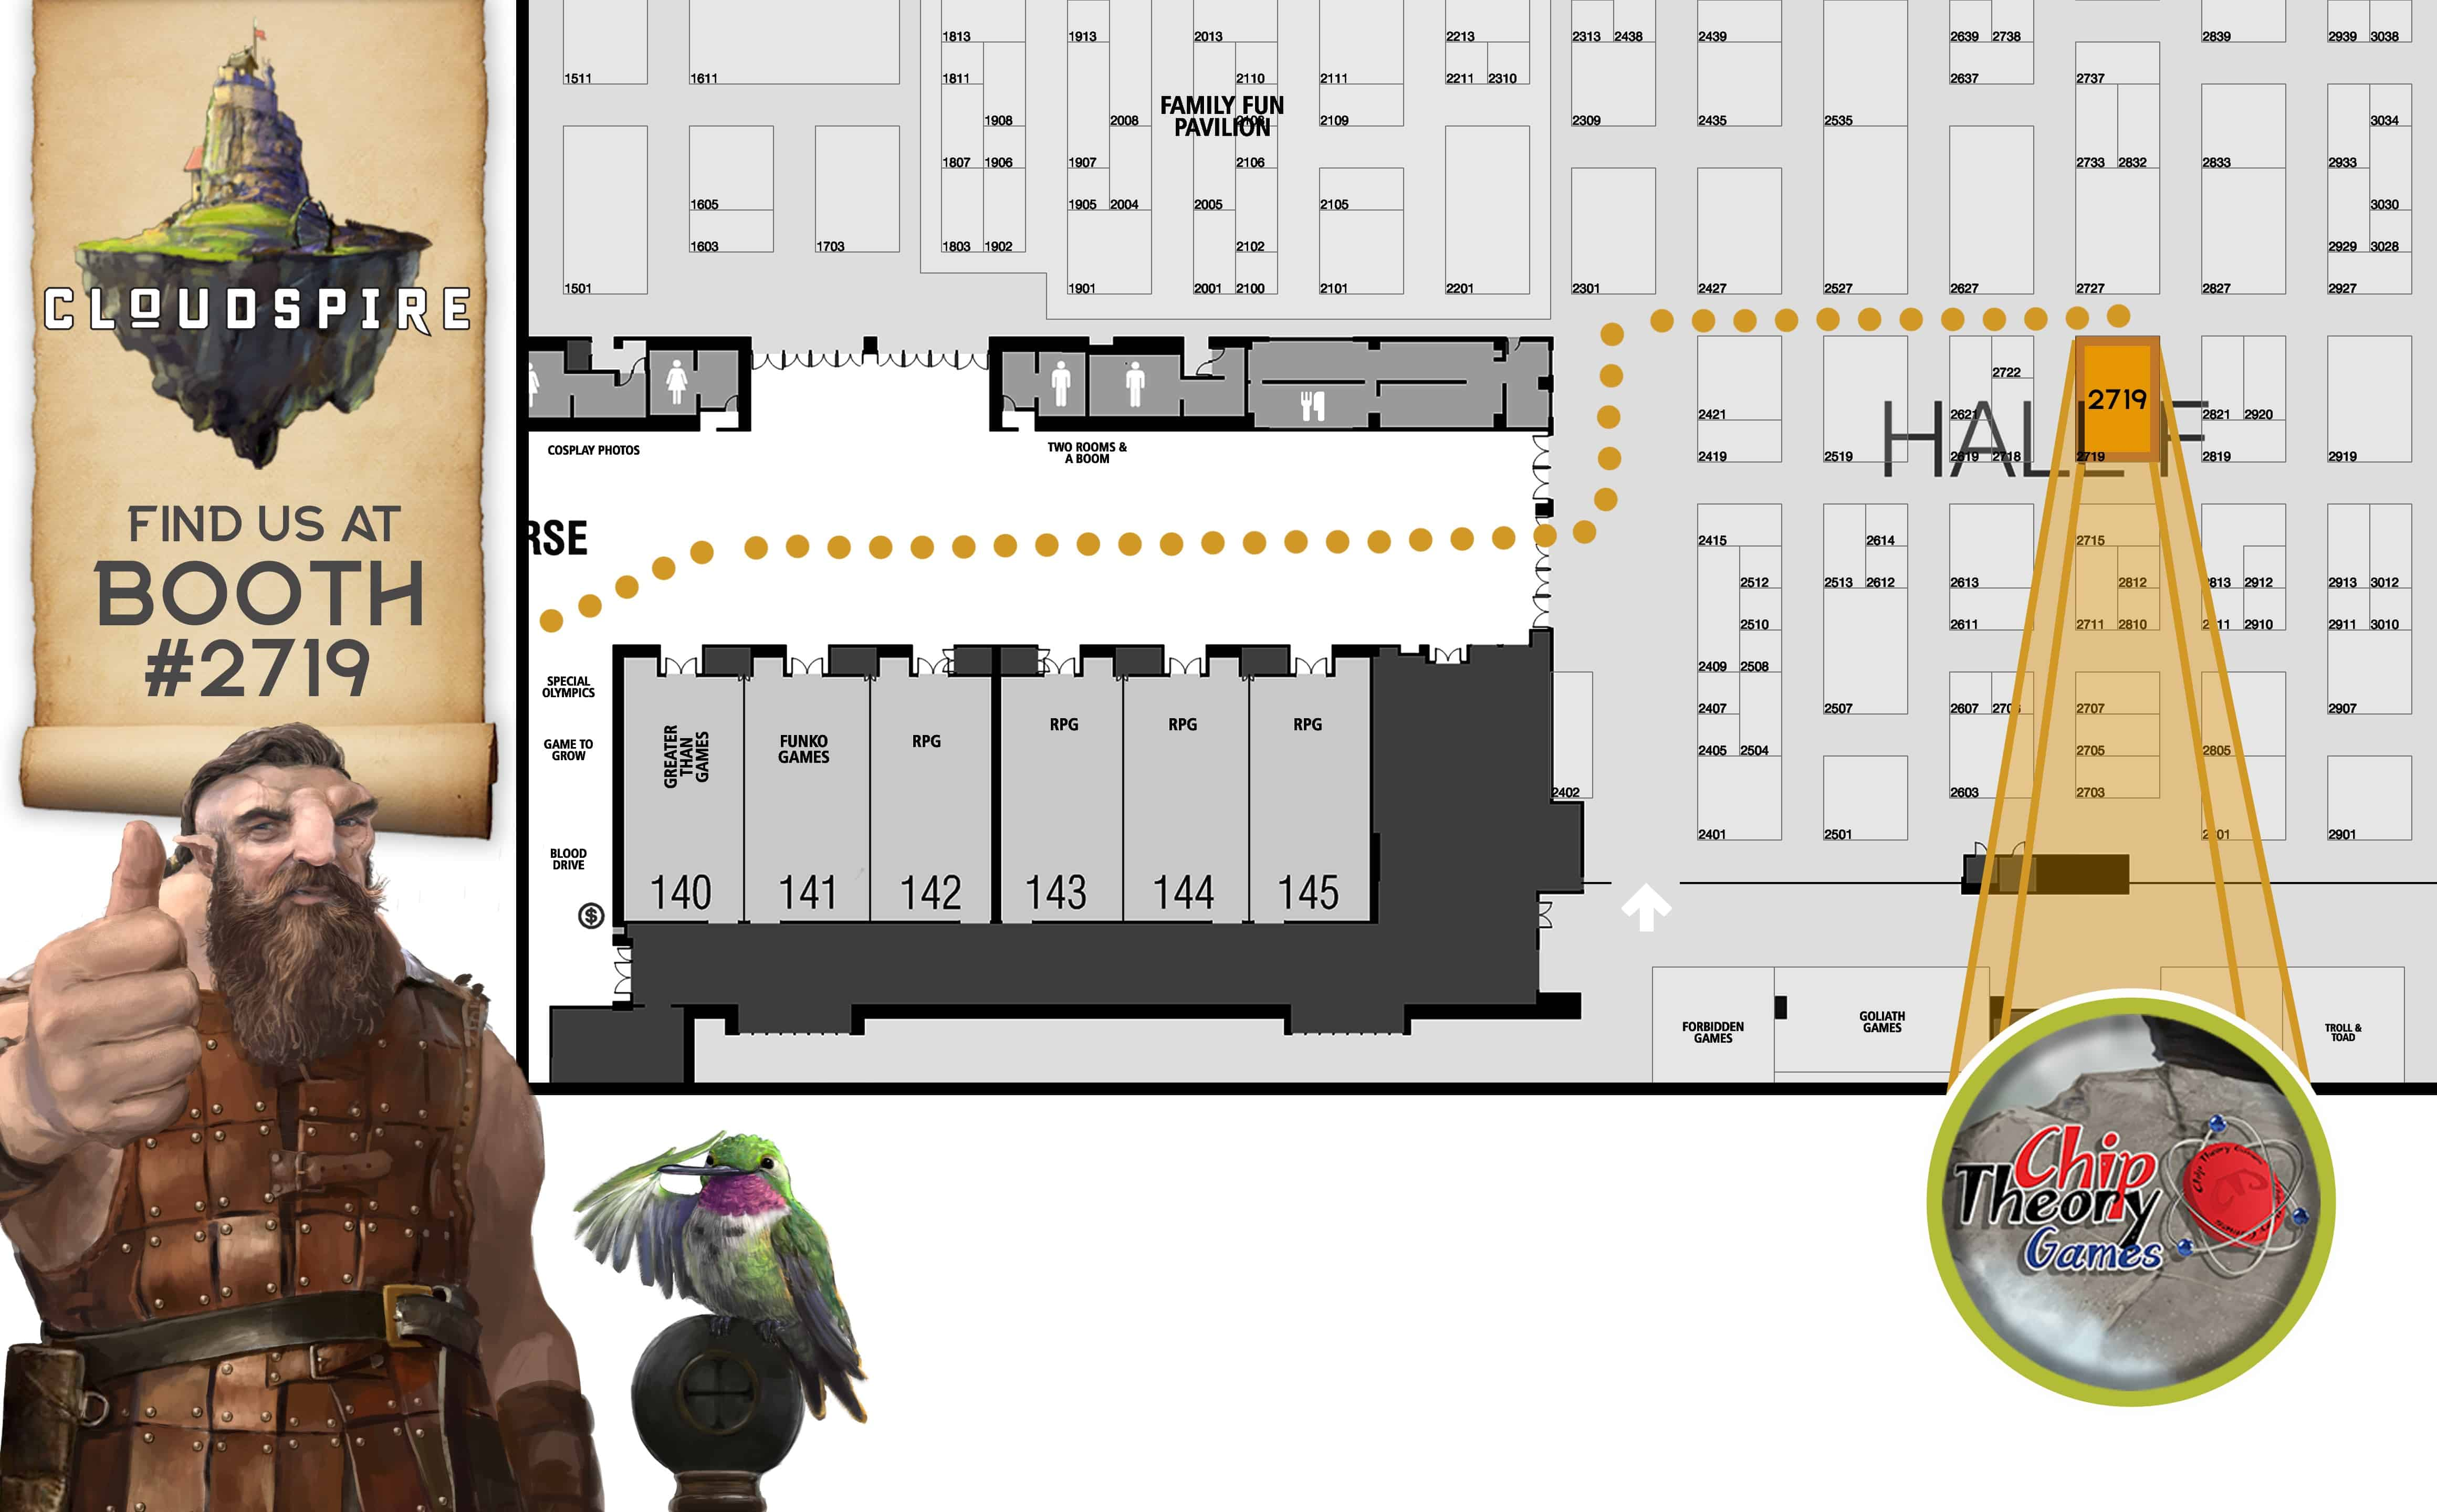 gencon map.png